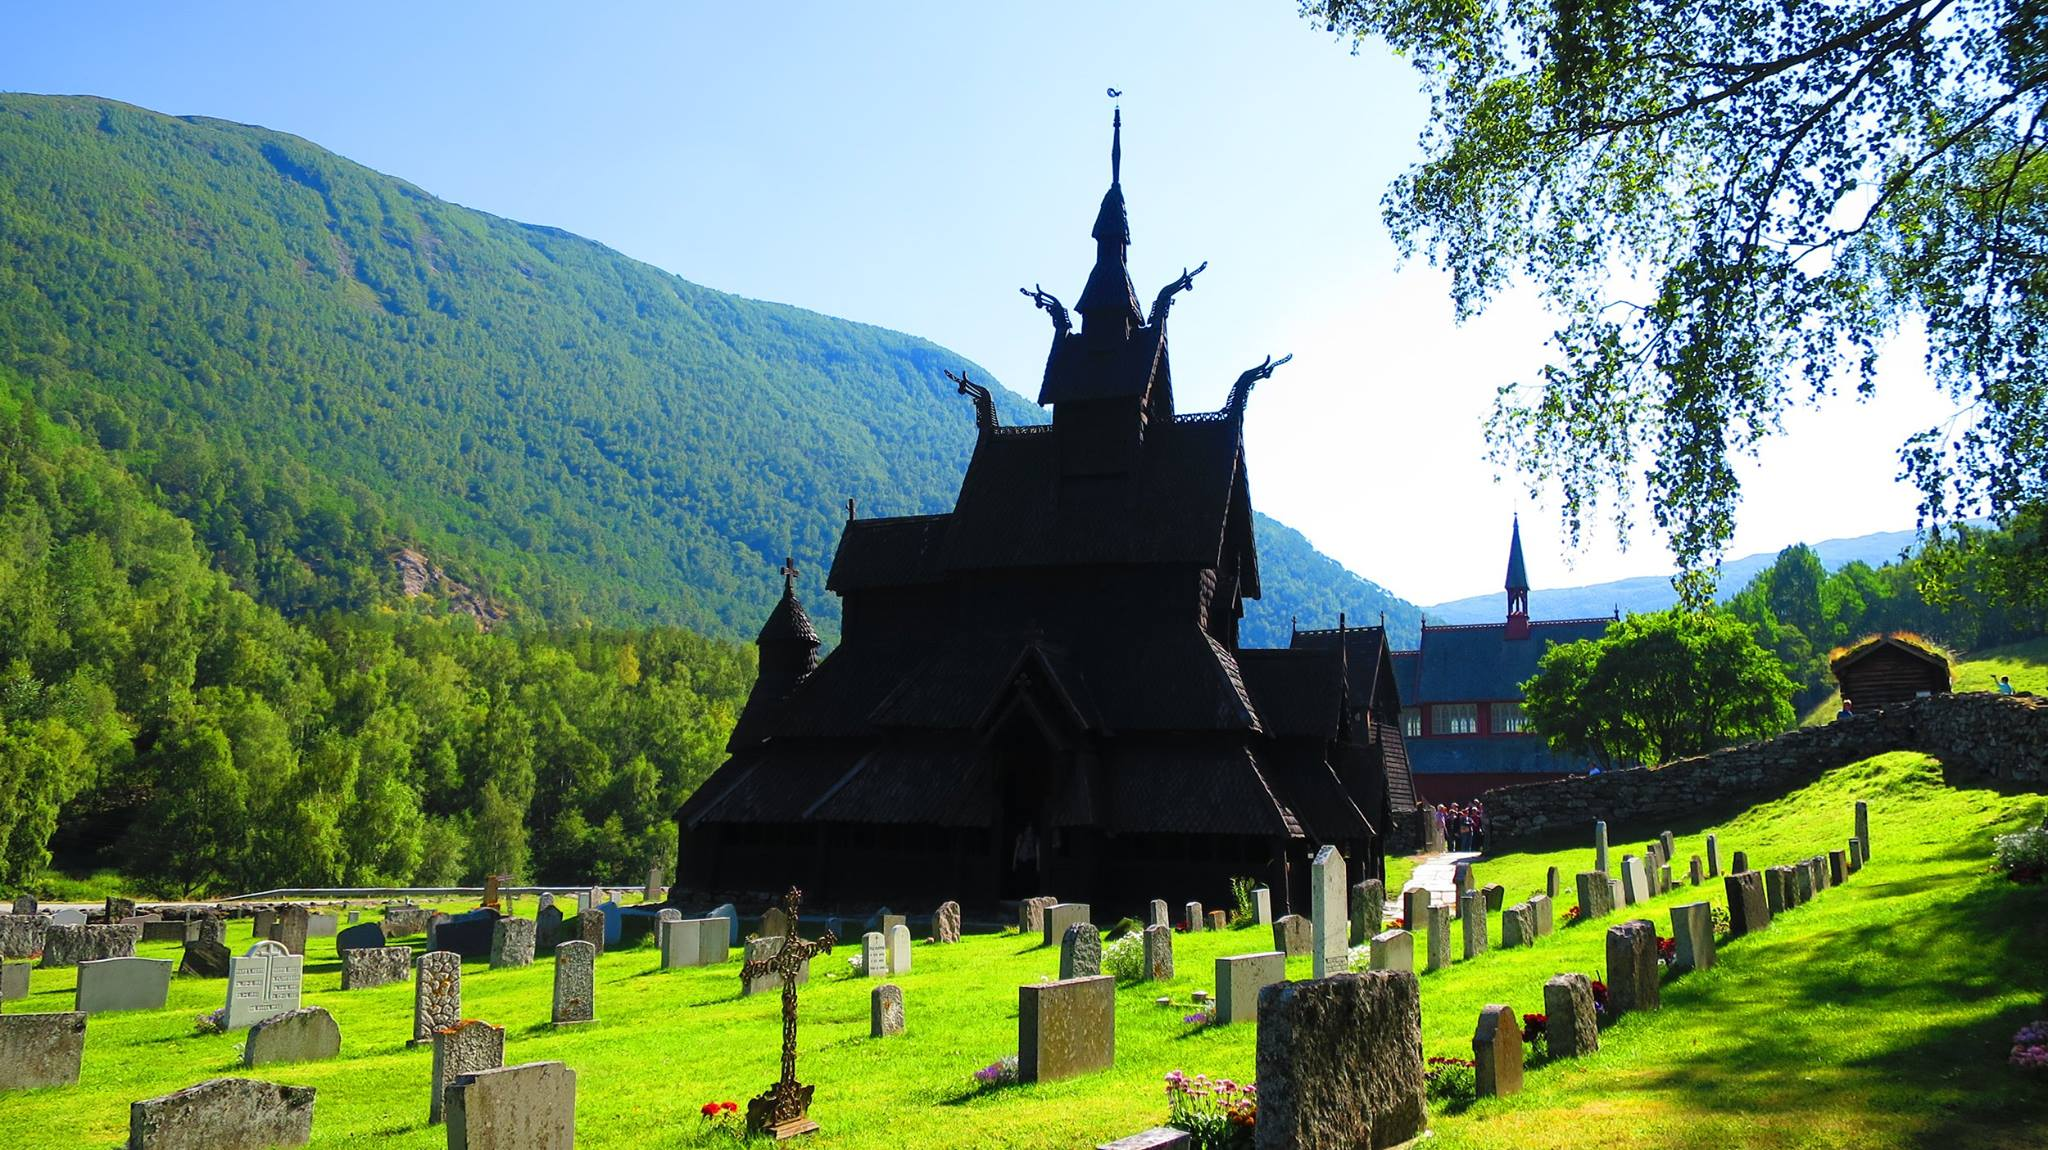 borgund-stave-church-norway-19